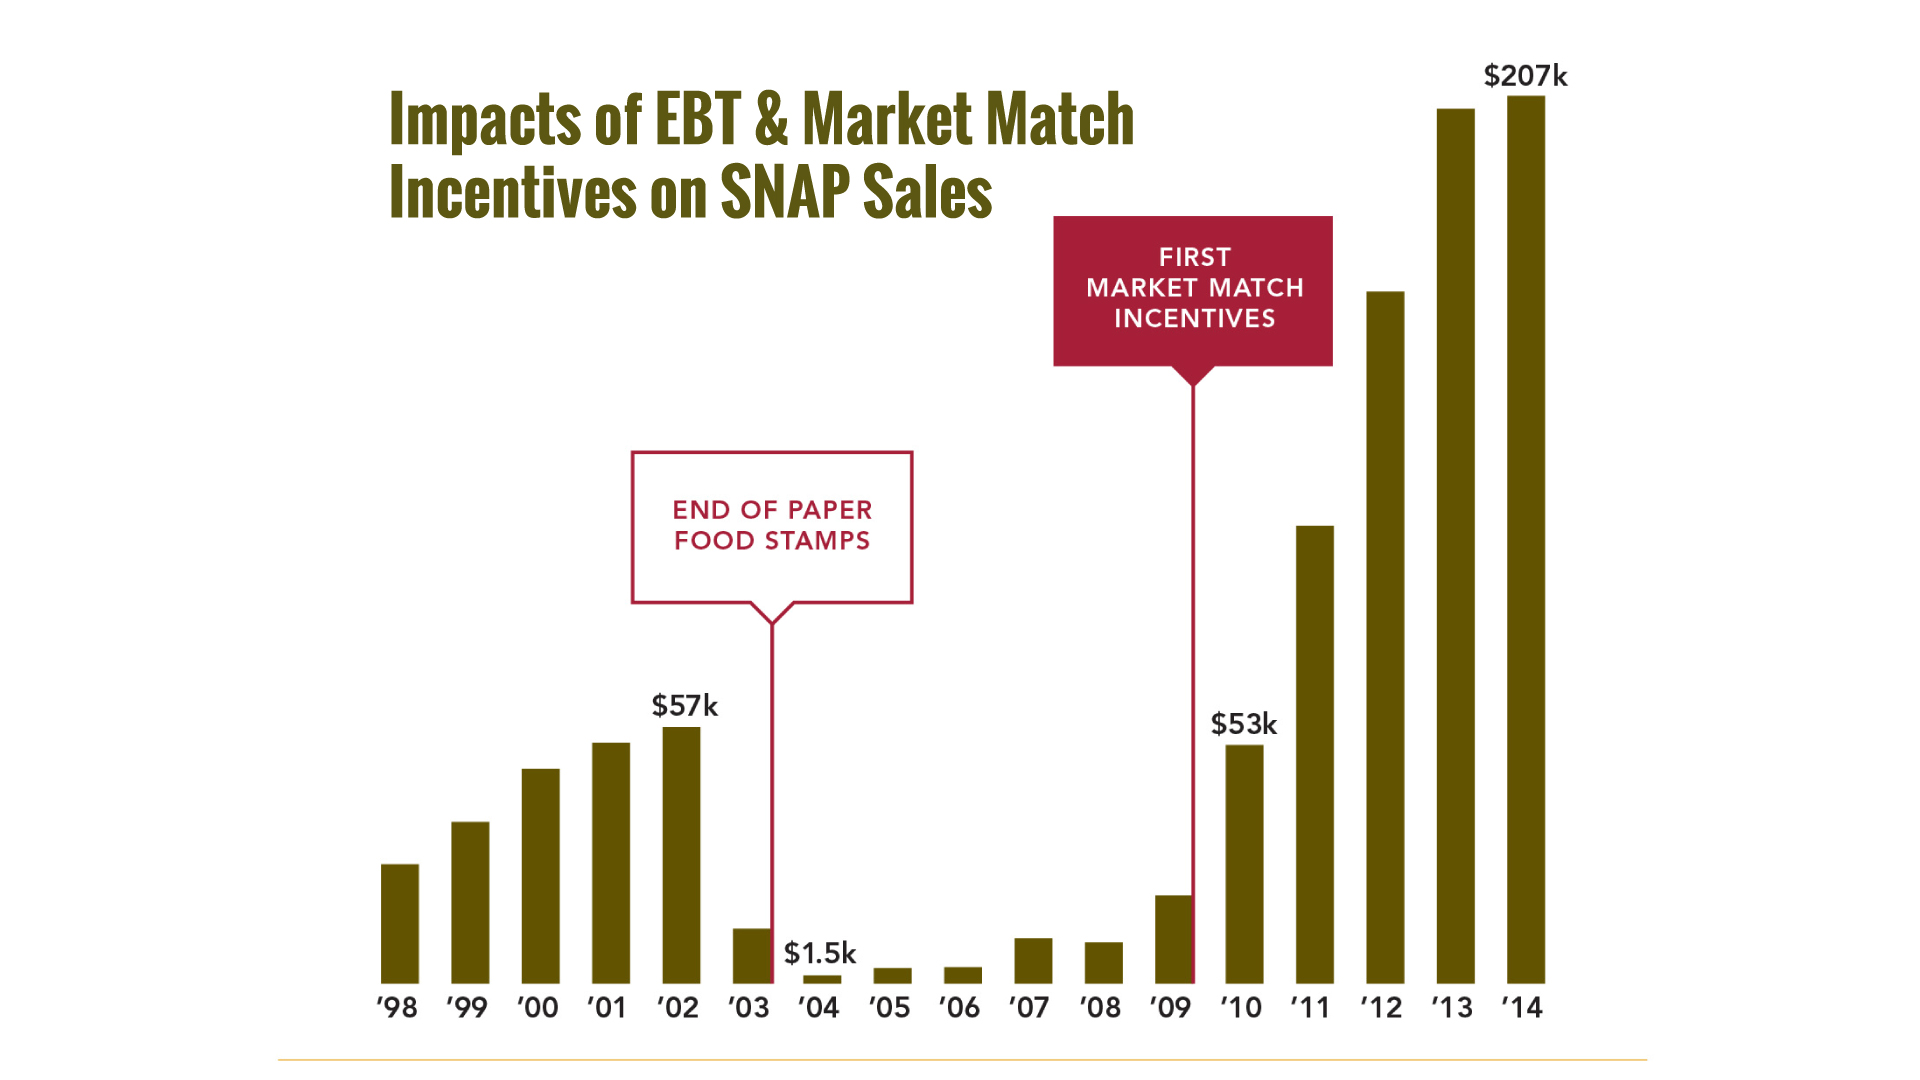 Impacts of EBT & Market Match Incentives on SNAP sales